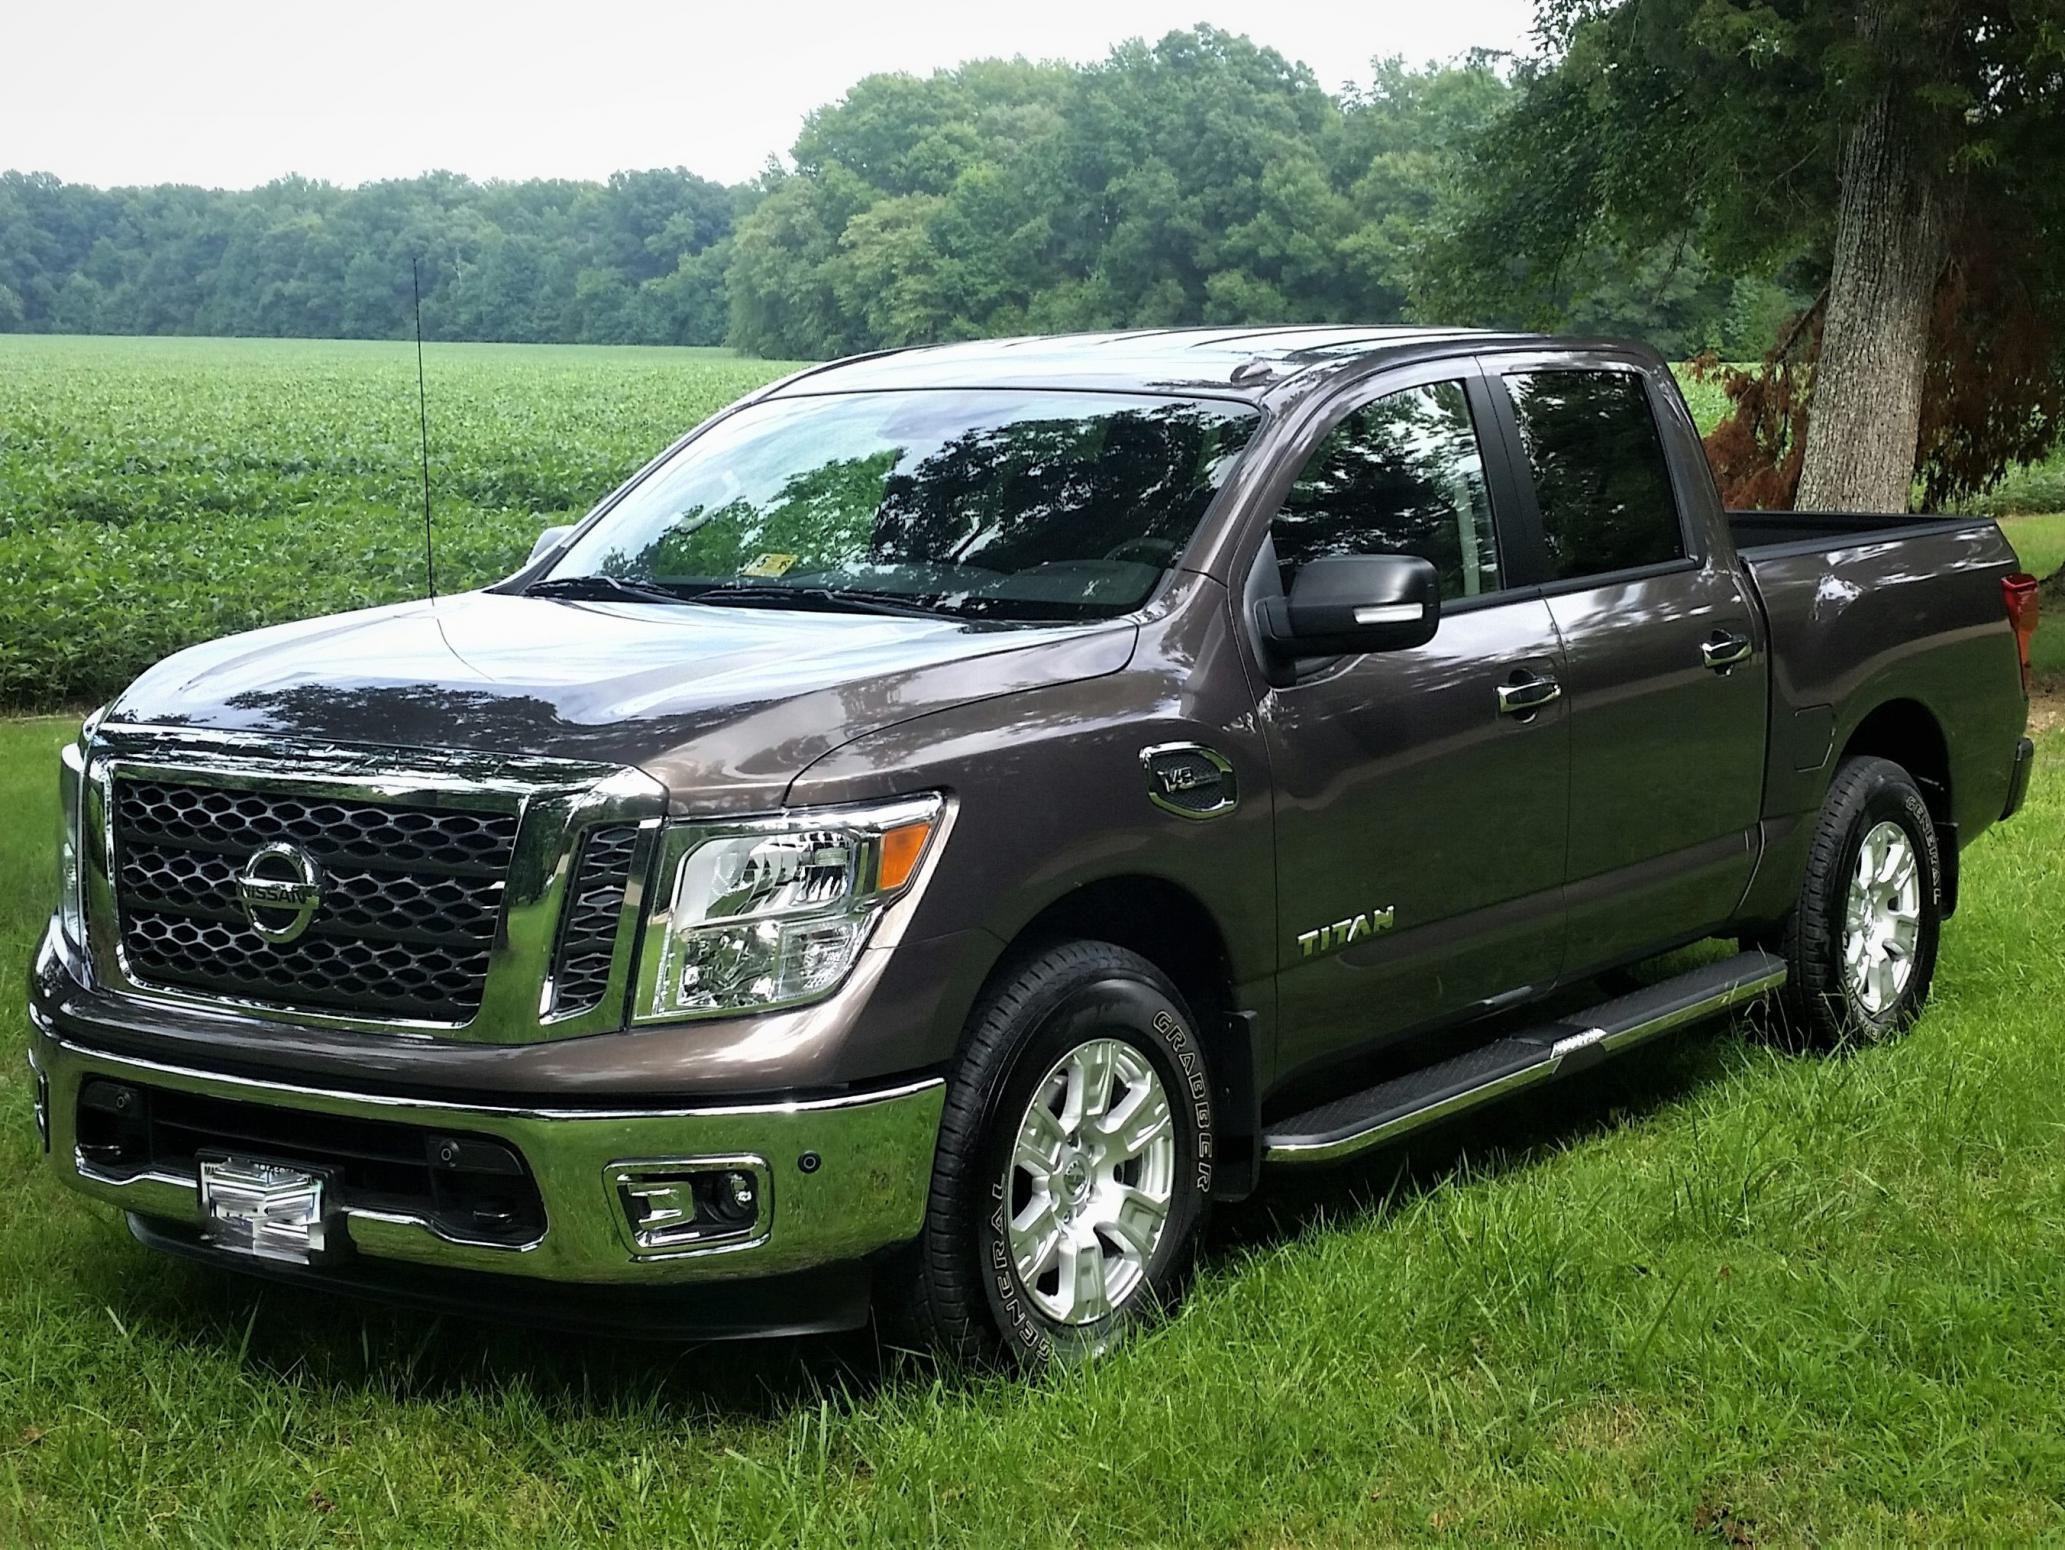 2017 Titan SV Crew Cab 4x4 - What I LOVE/HATE - Page 3 ...